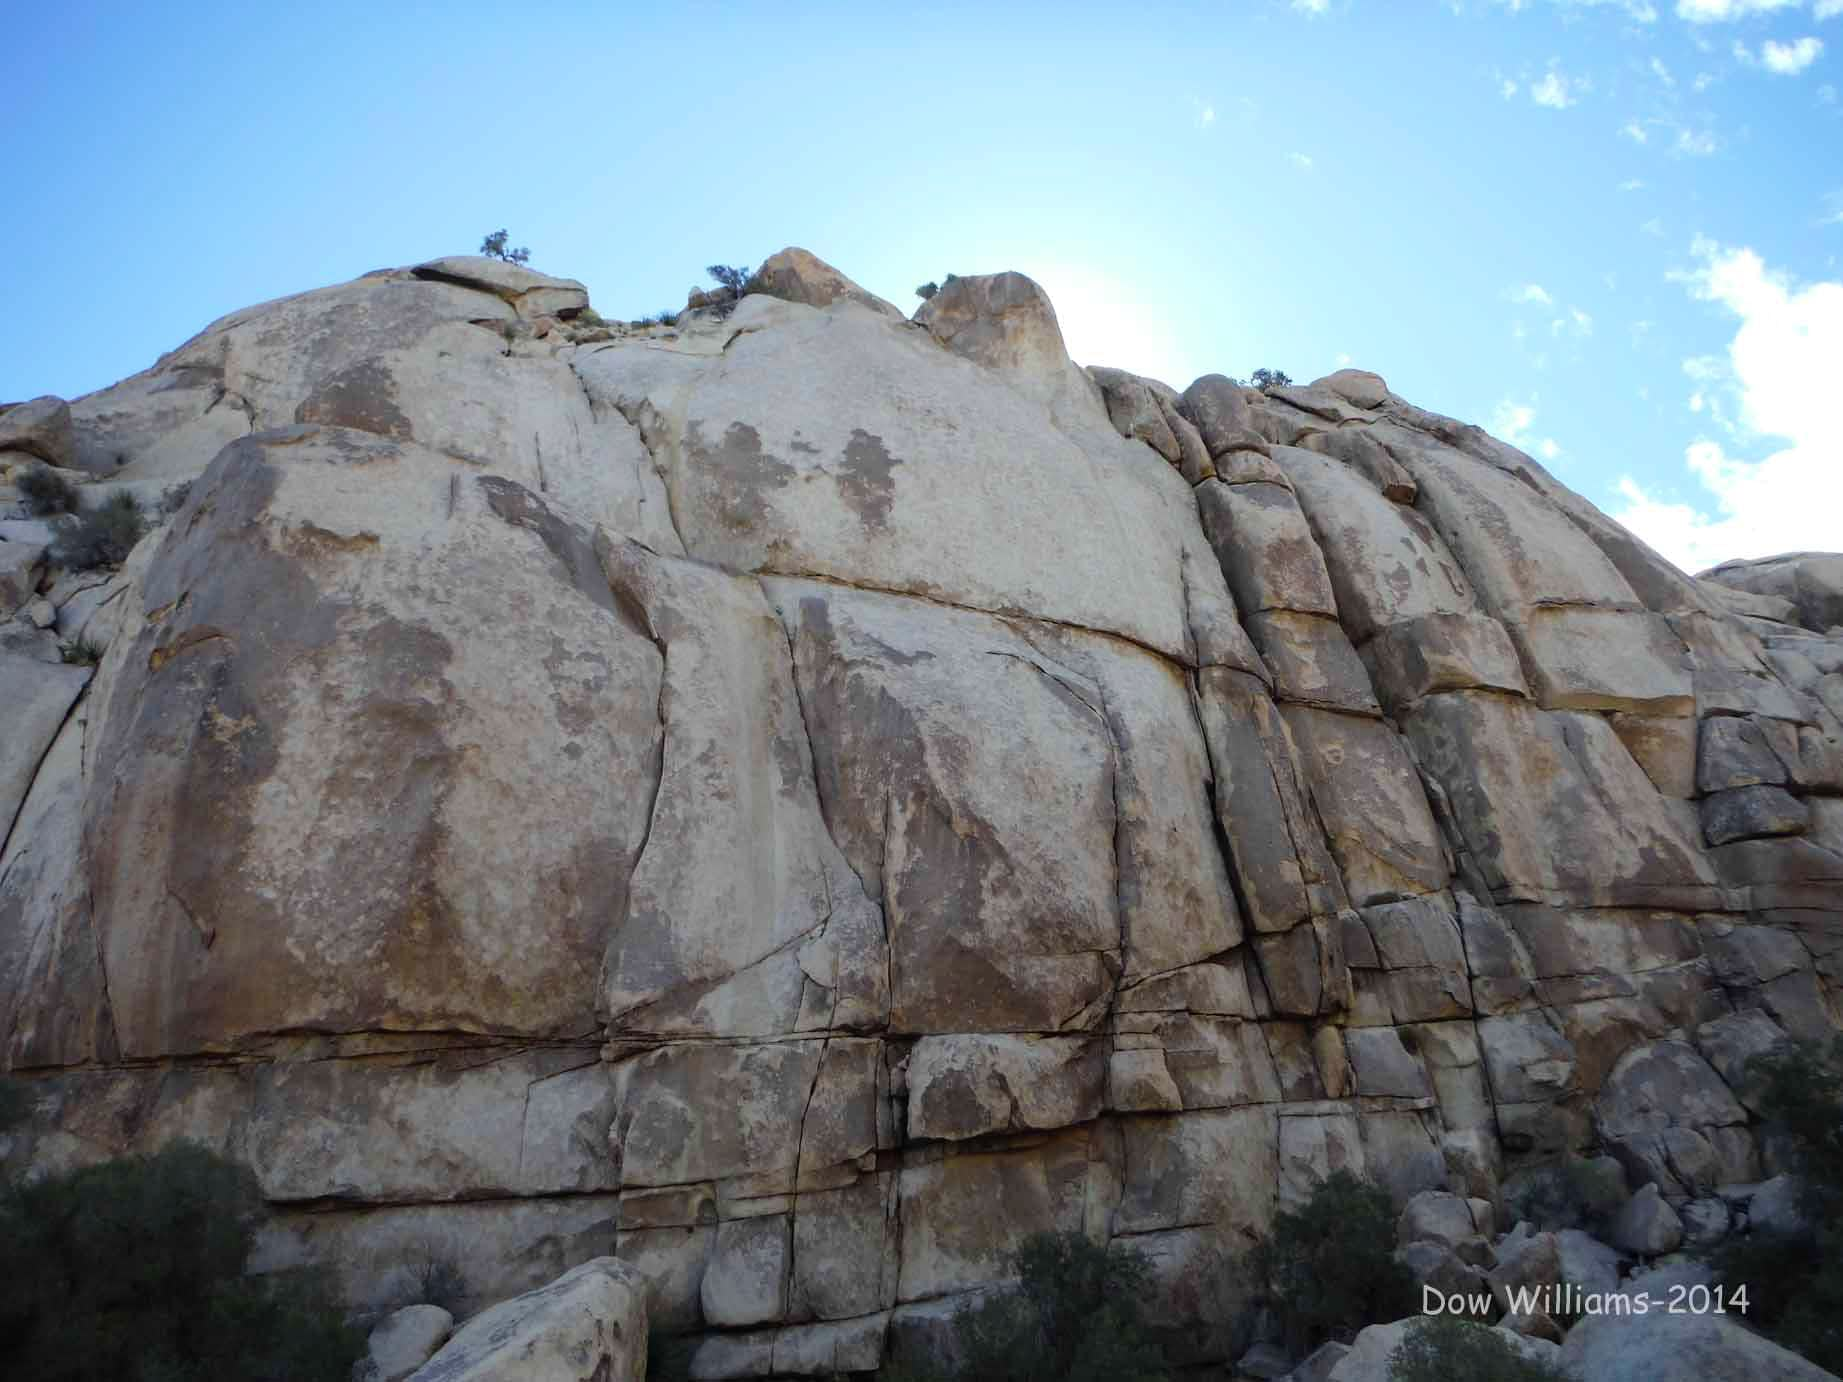 Upper Dodge City, 5.9-5.11d